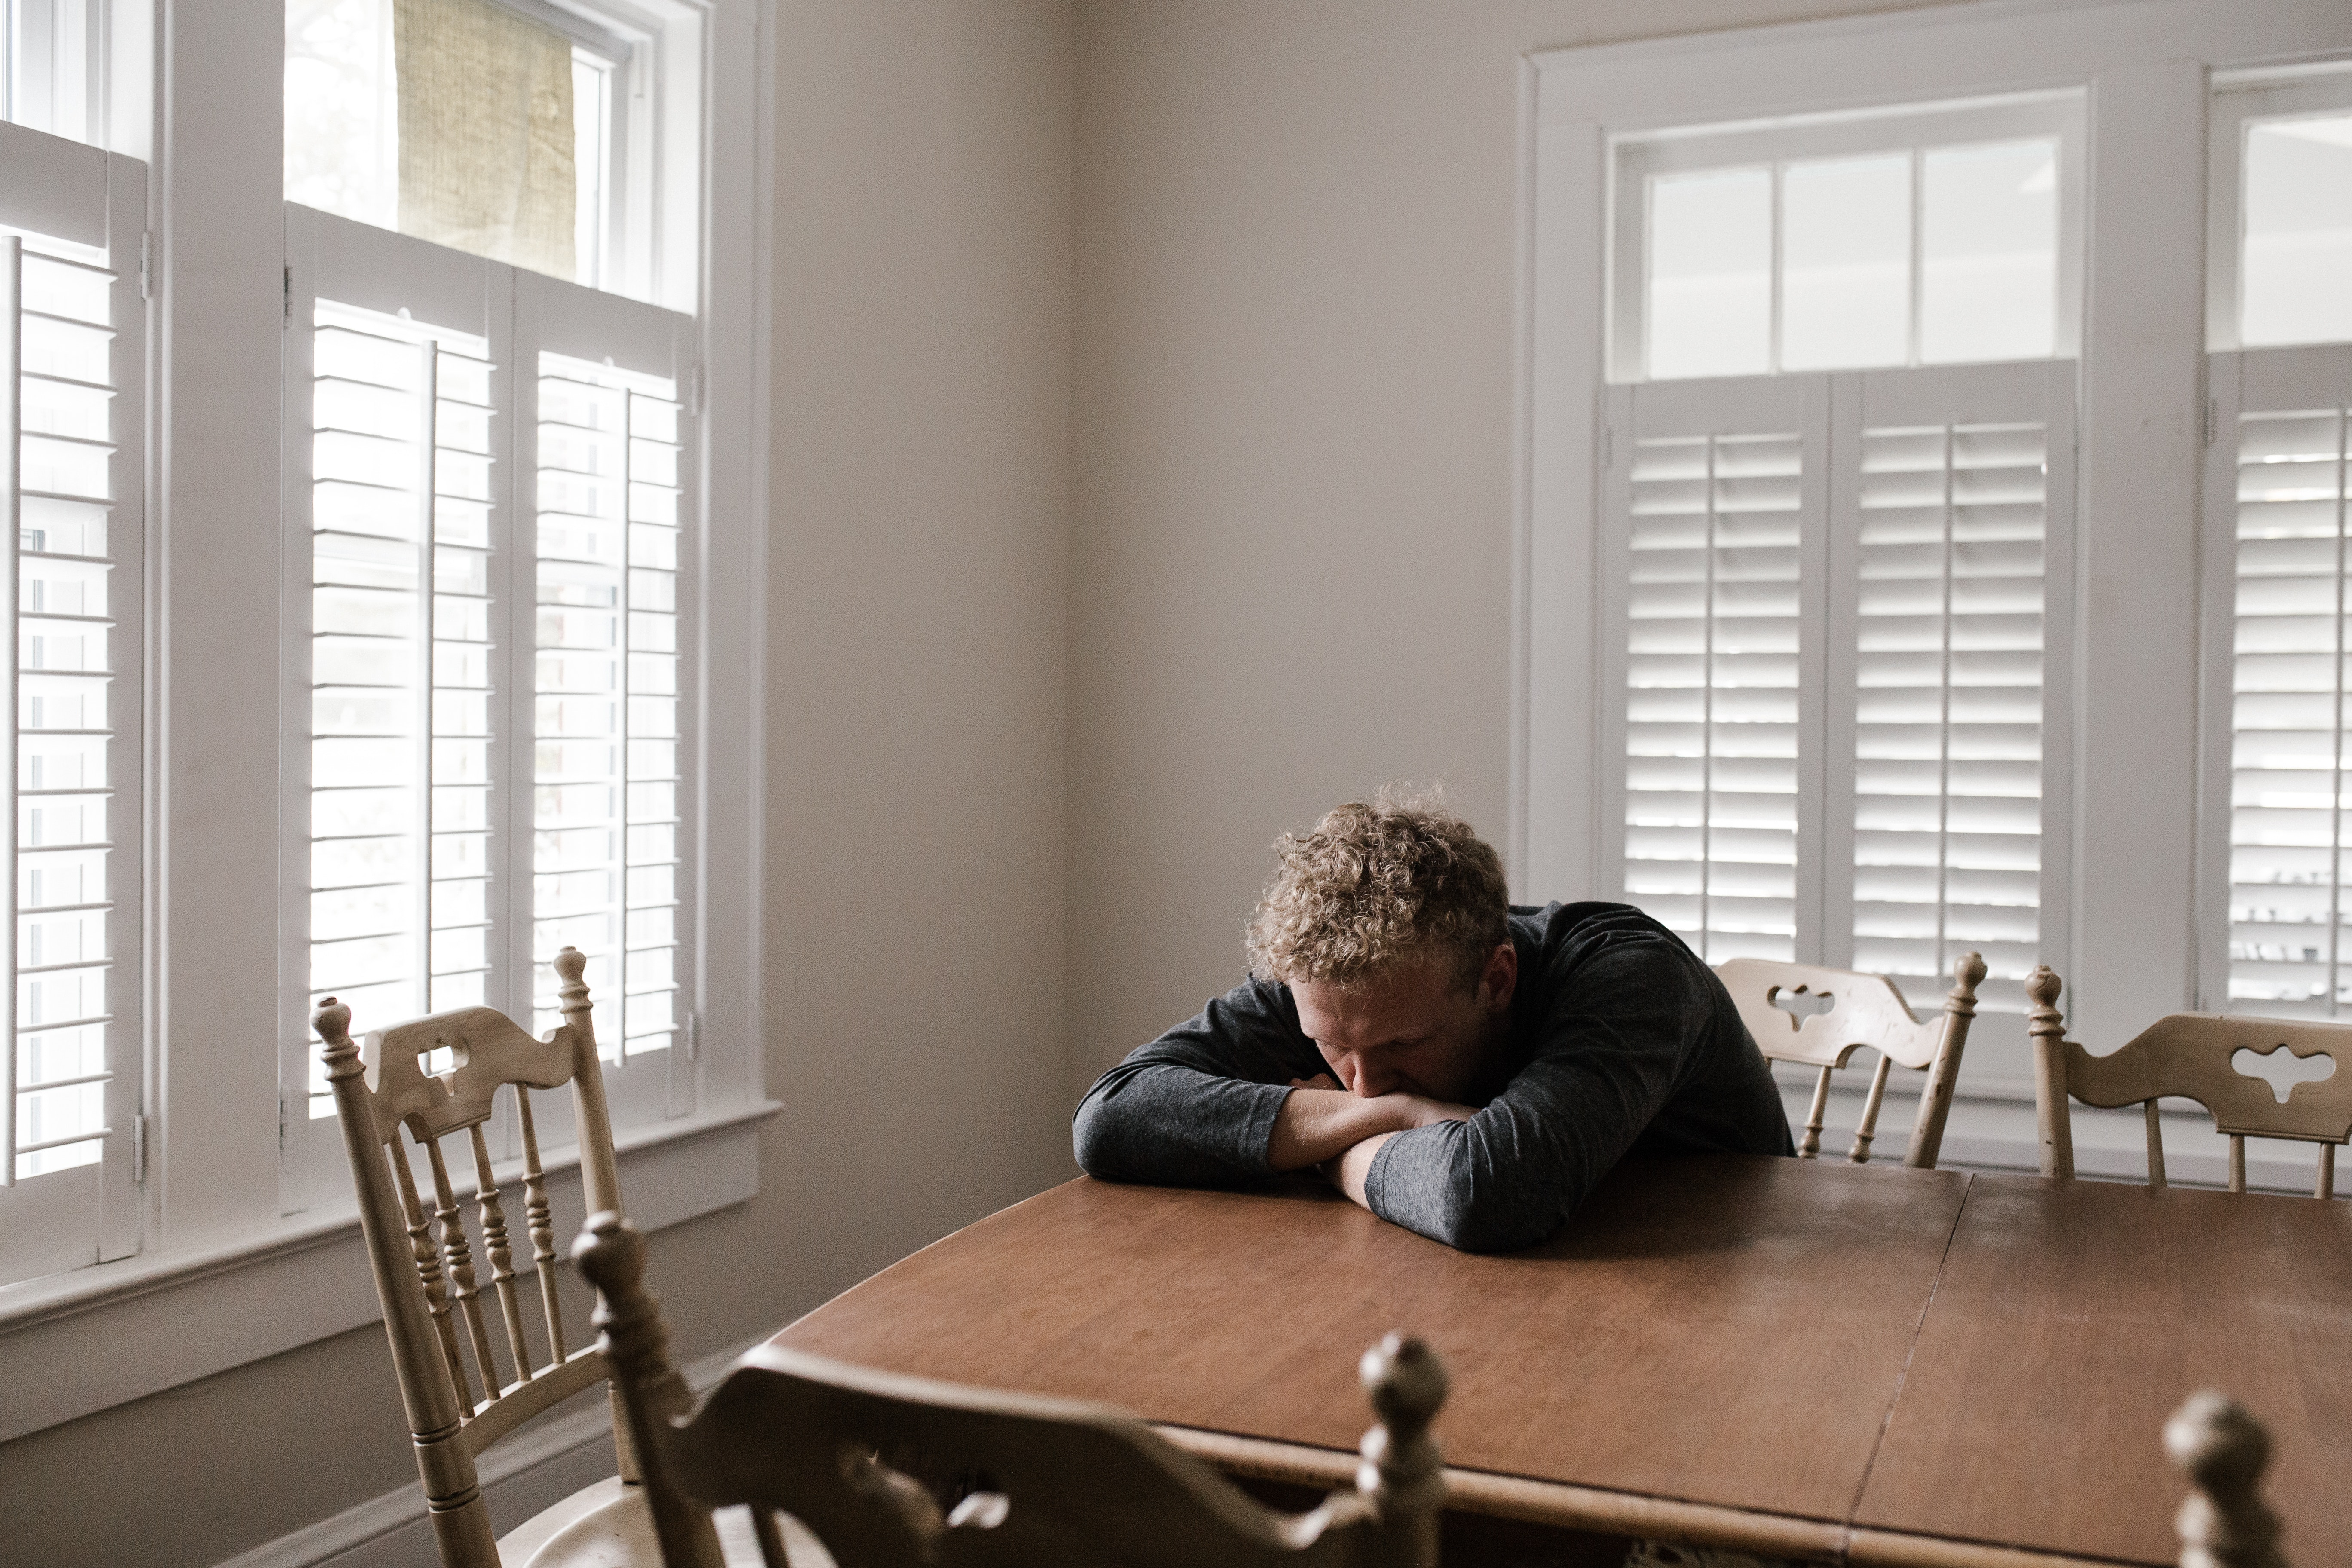 Alone, Lonely, or Cut Off Altogether – How Isolated Have You Been Feeling?